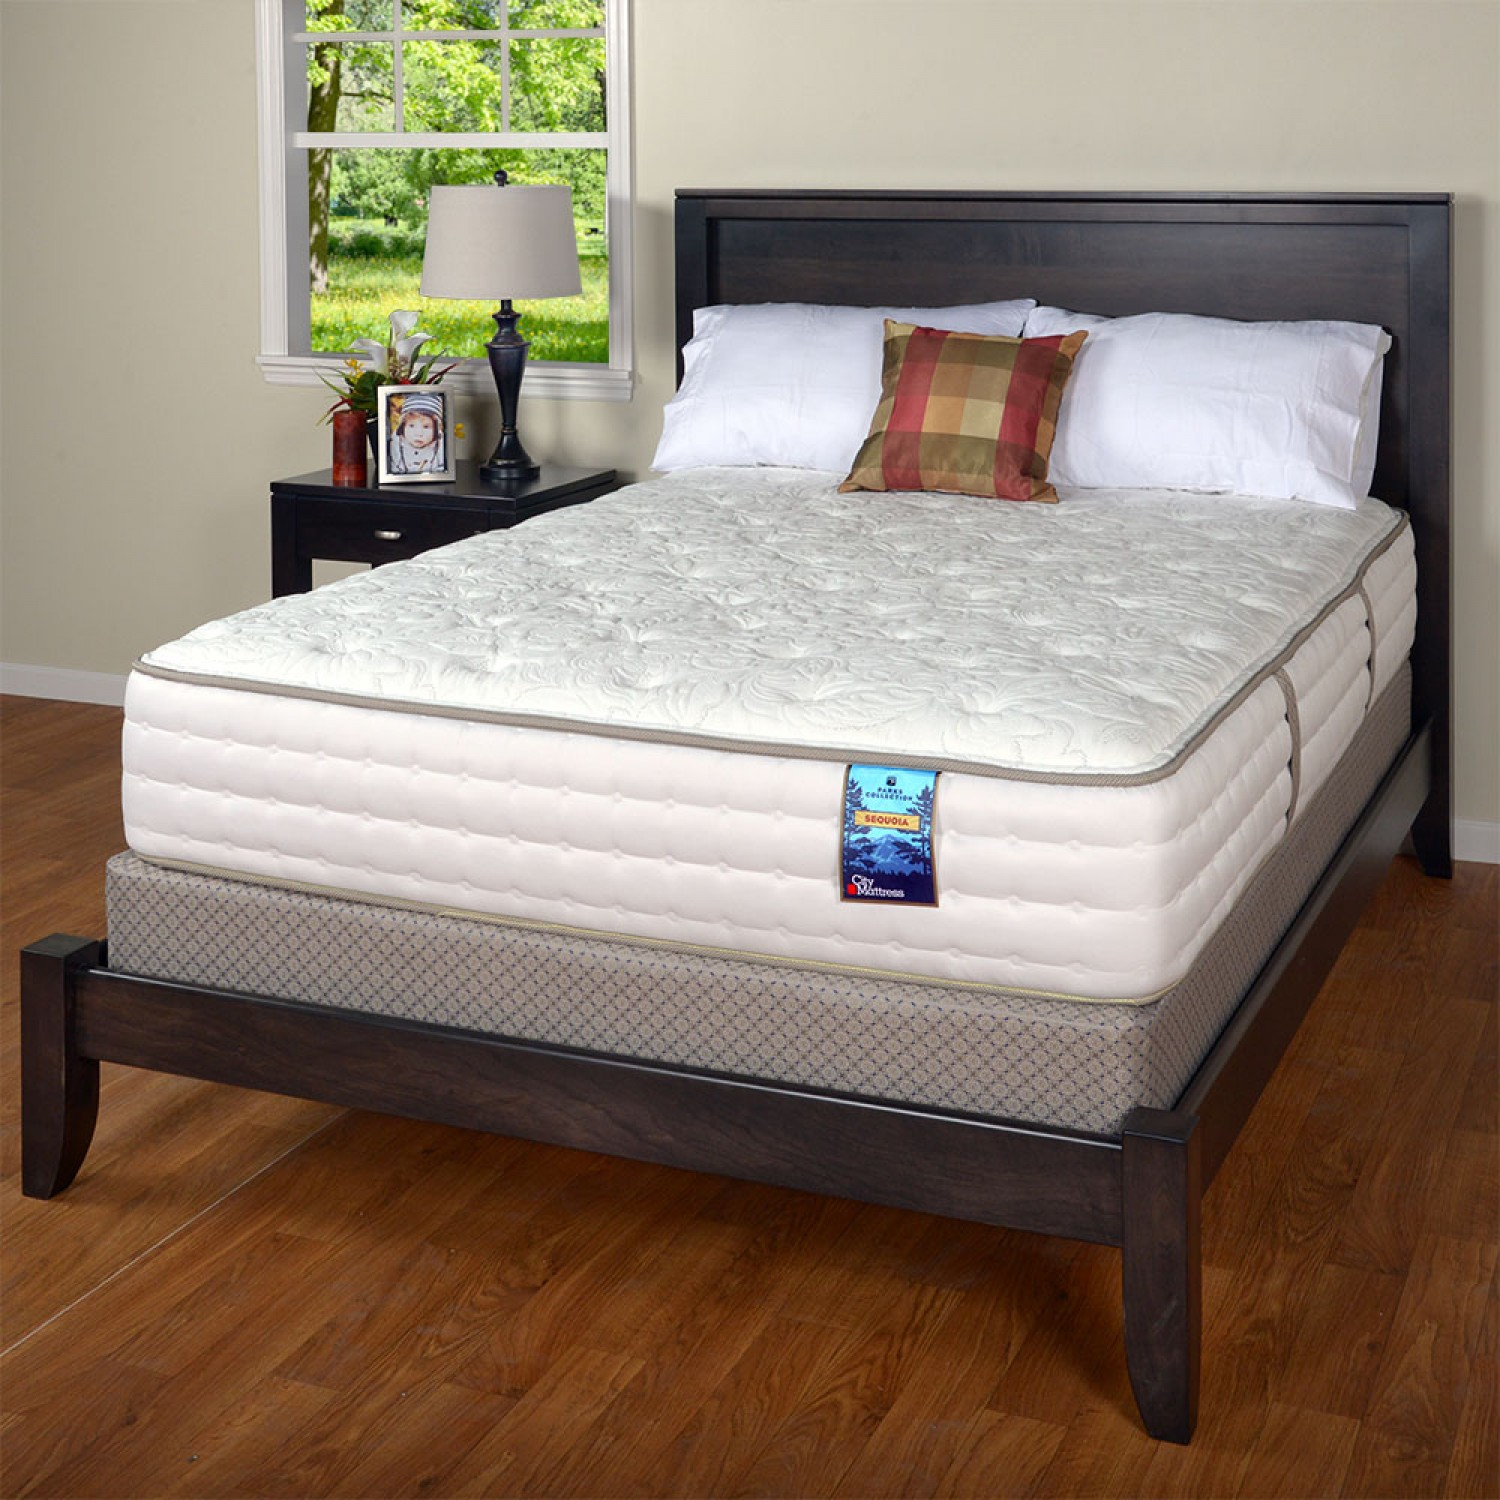 stock specials mattress coil today firm or model in foam city